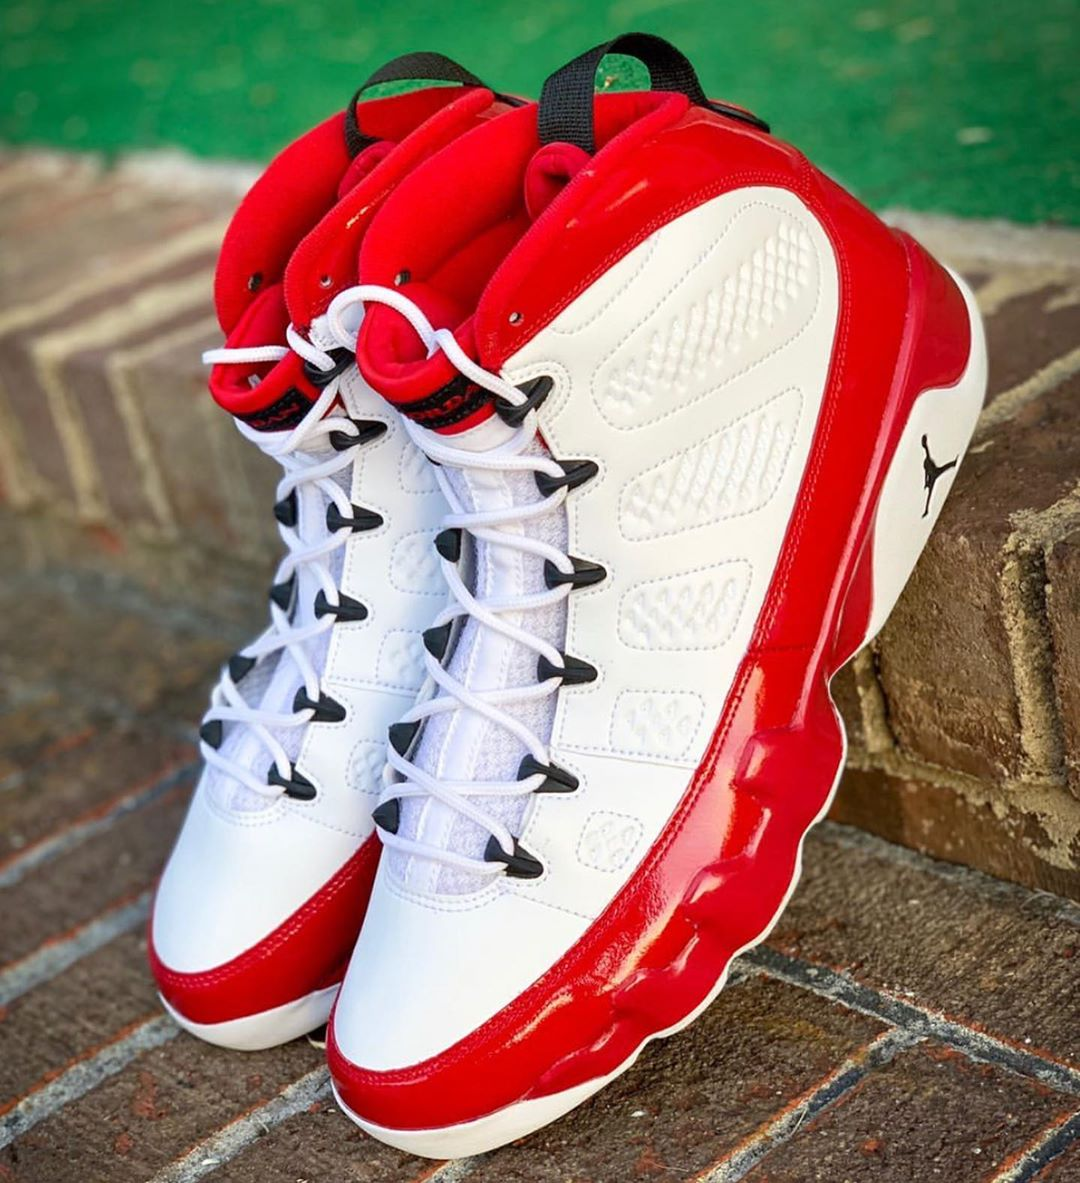 huge discount 81a22 948f4 Detailed Looks at the Air Jordan 9